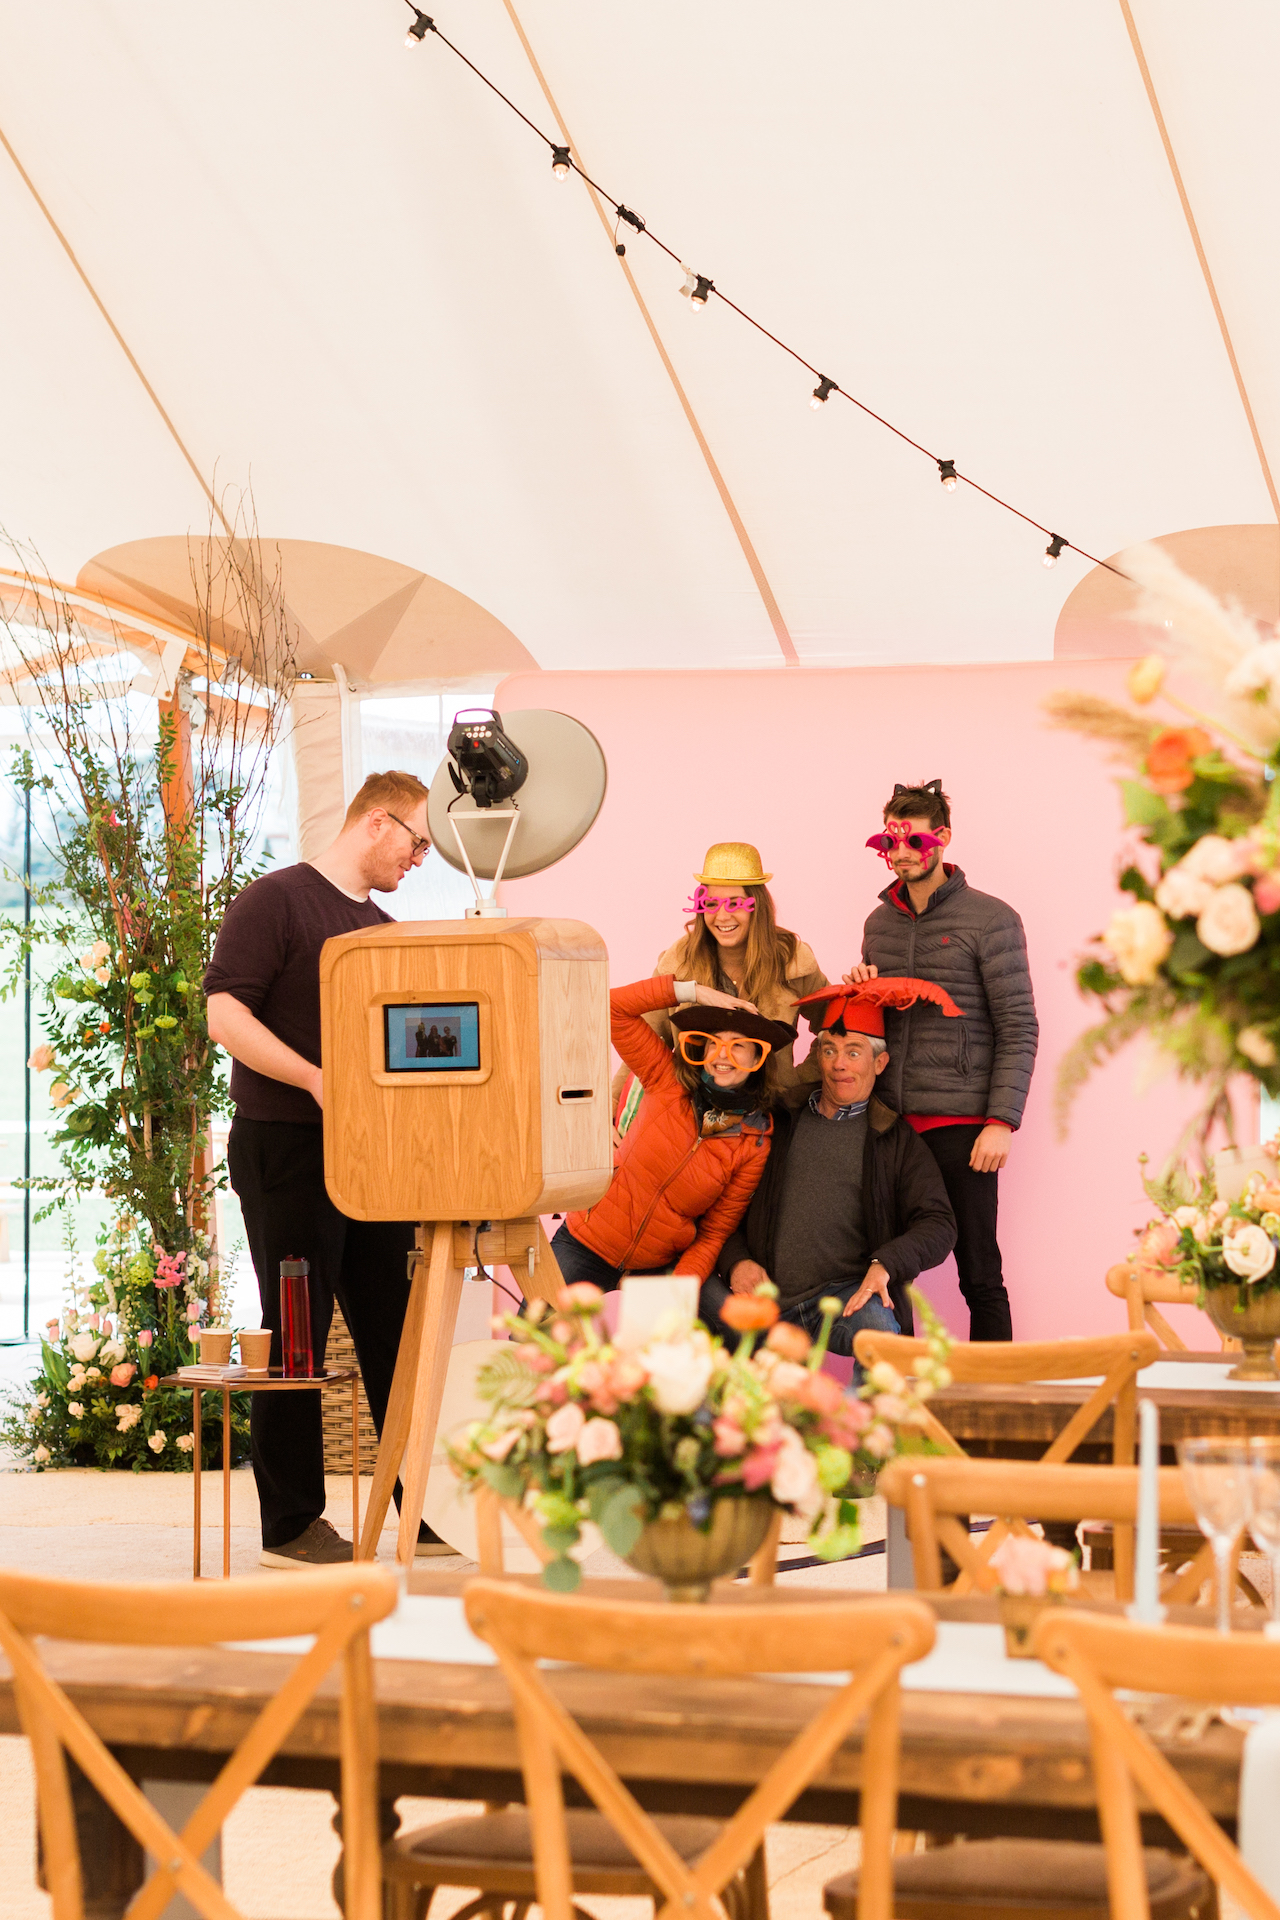 PapaKåta Spring Open Weekend Sperry Tent captured by Lucy Davenport Photography: Booth Revolution